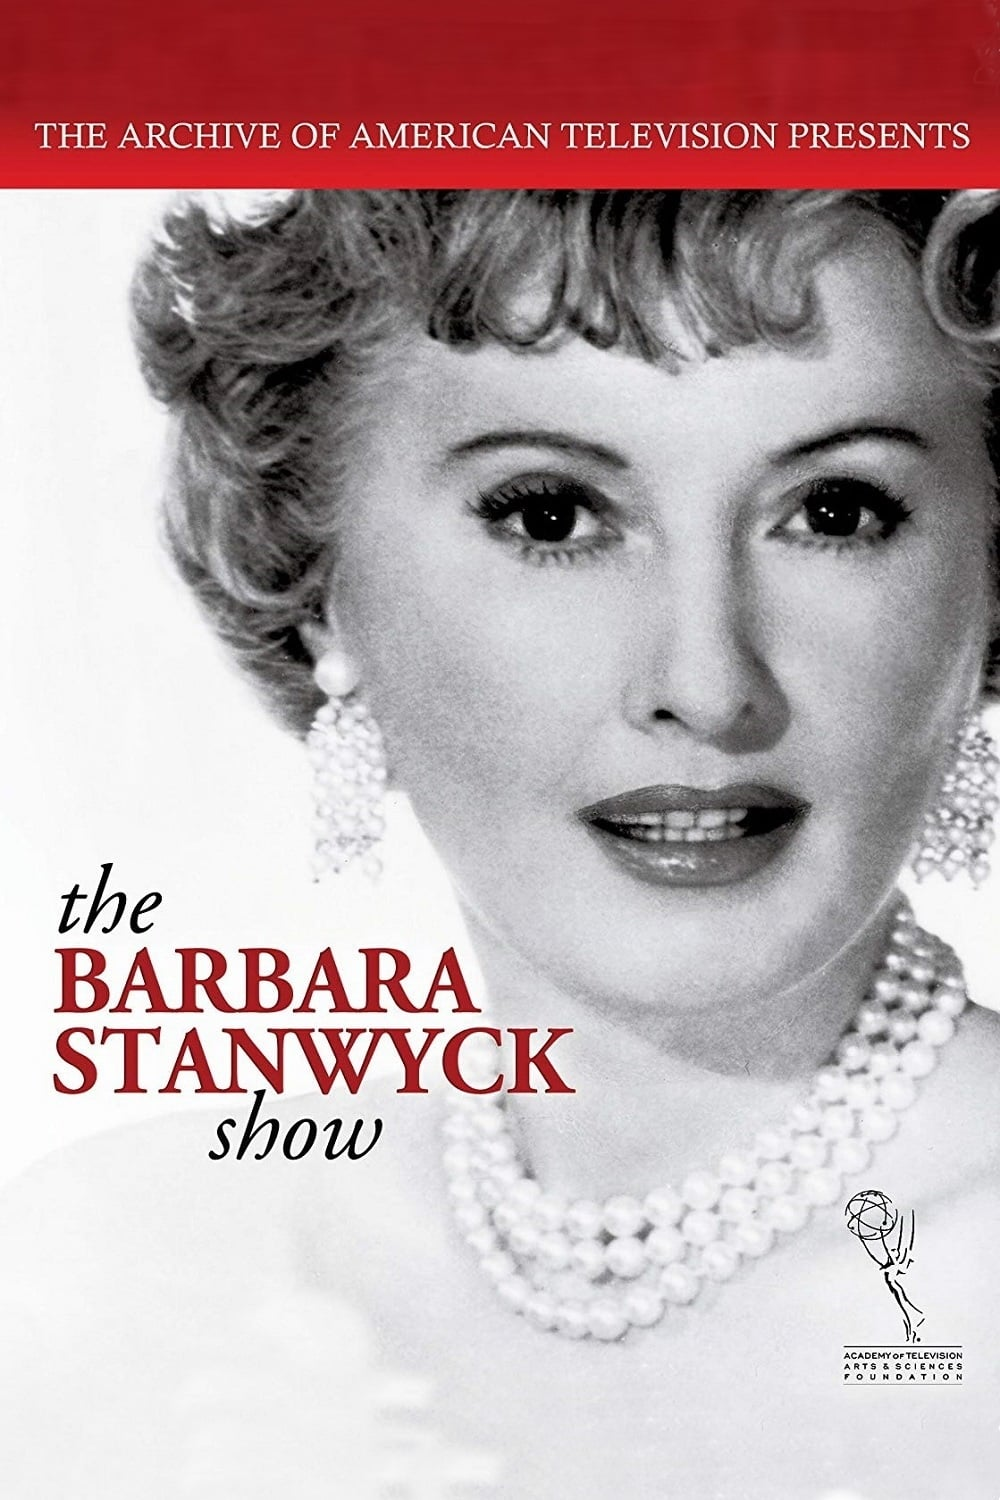 The Barbara Stanwyck Show (1960)